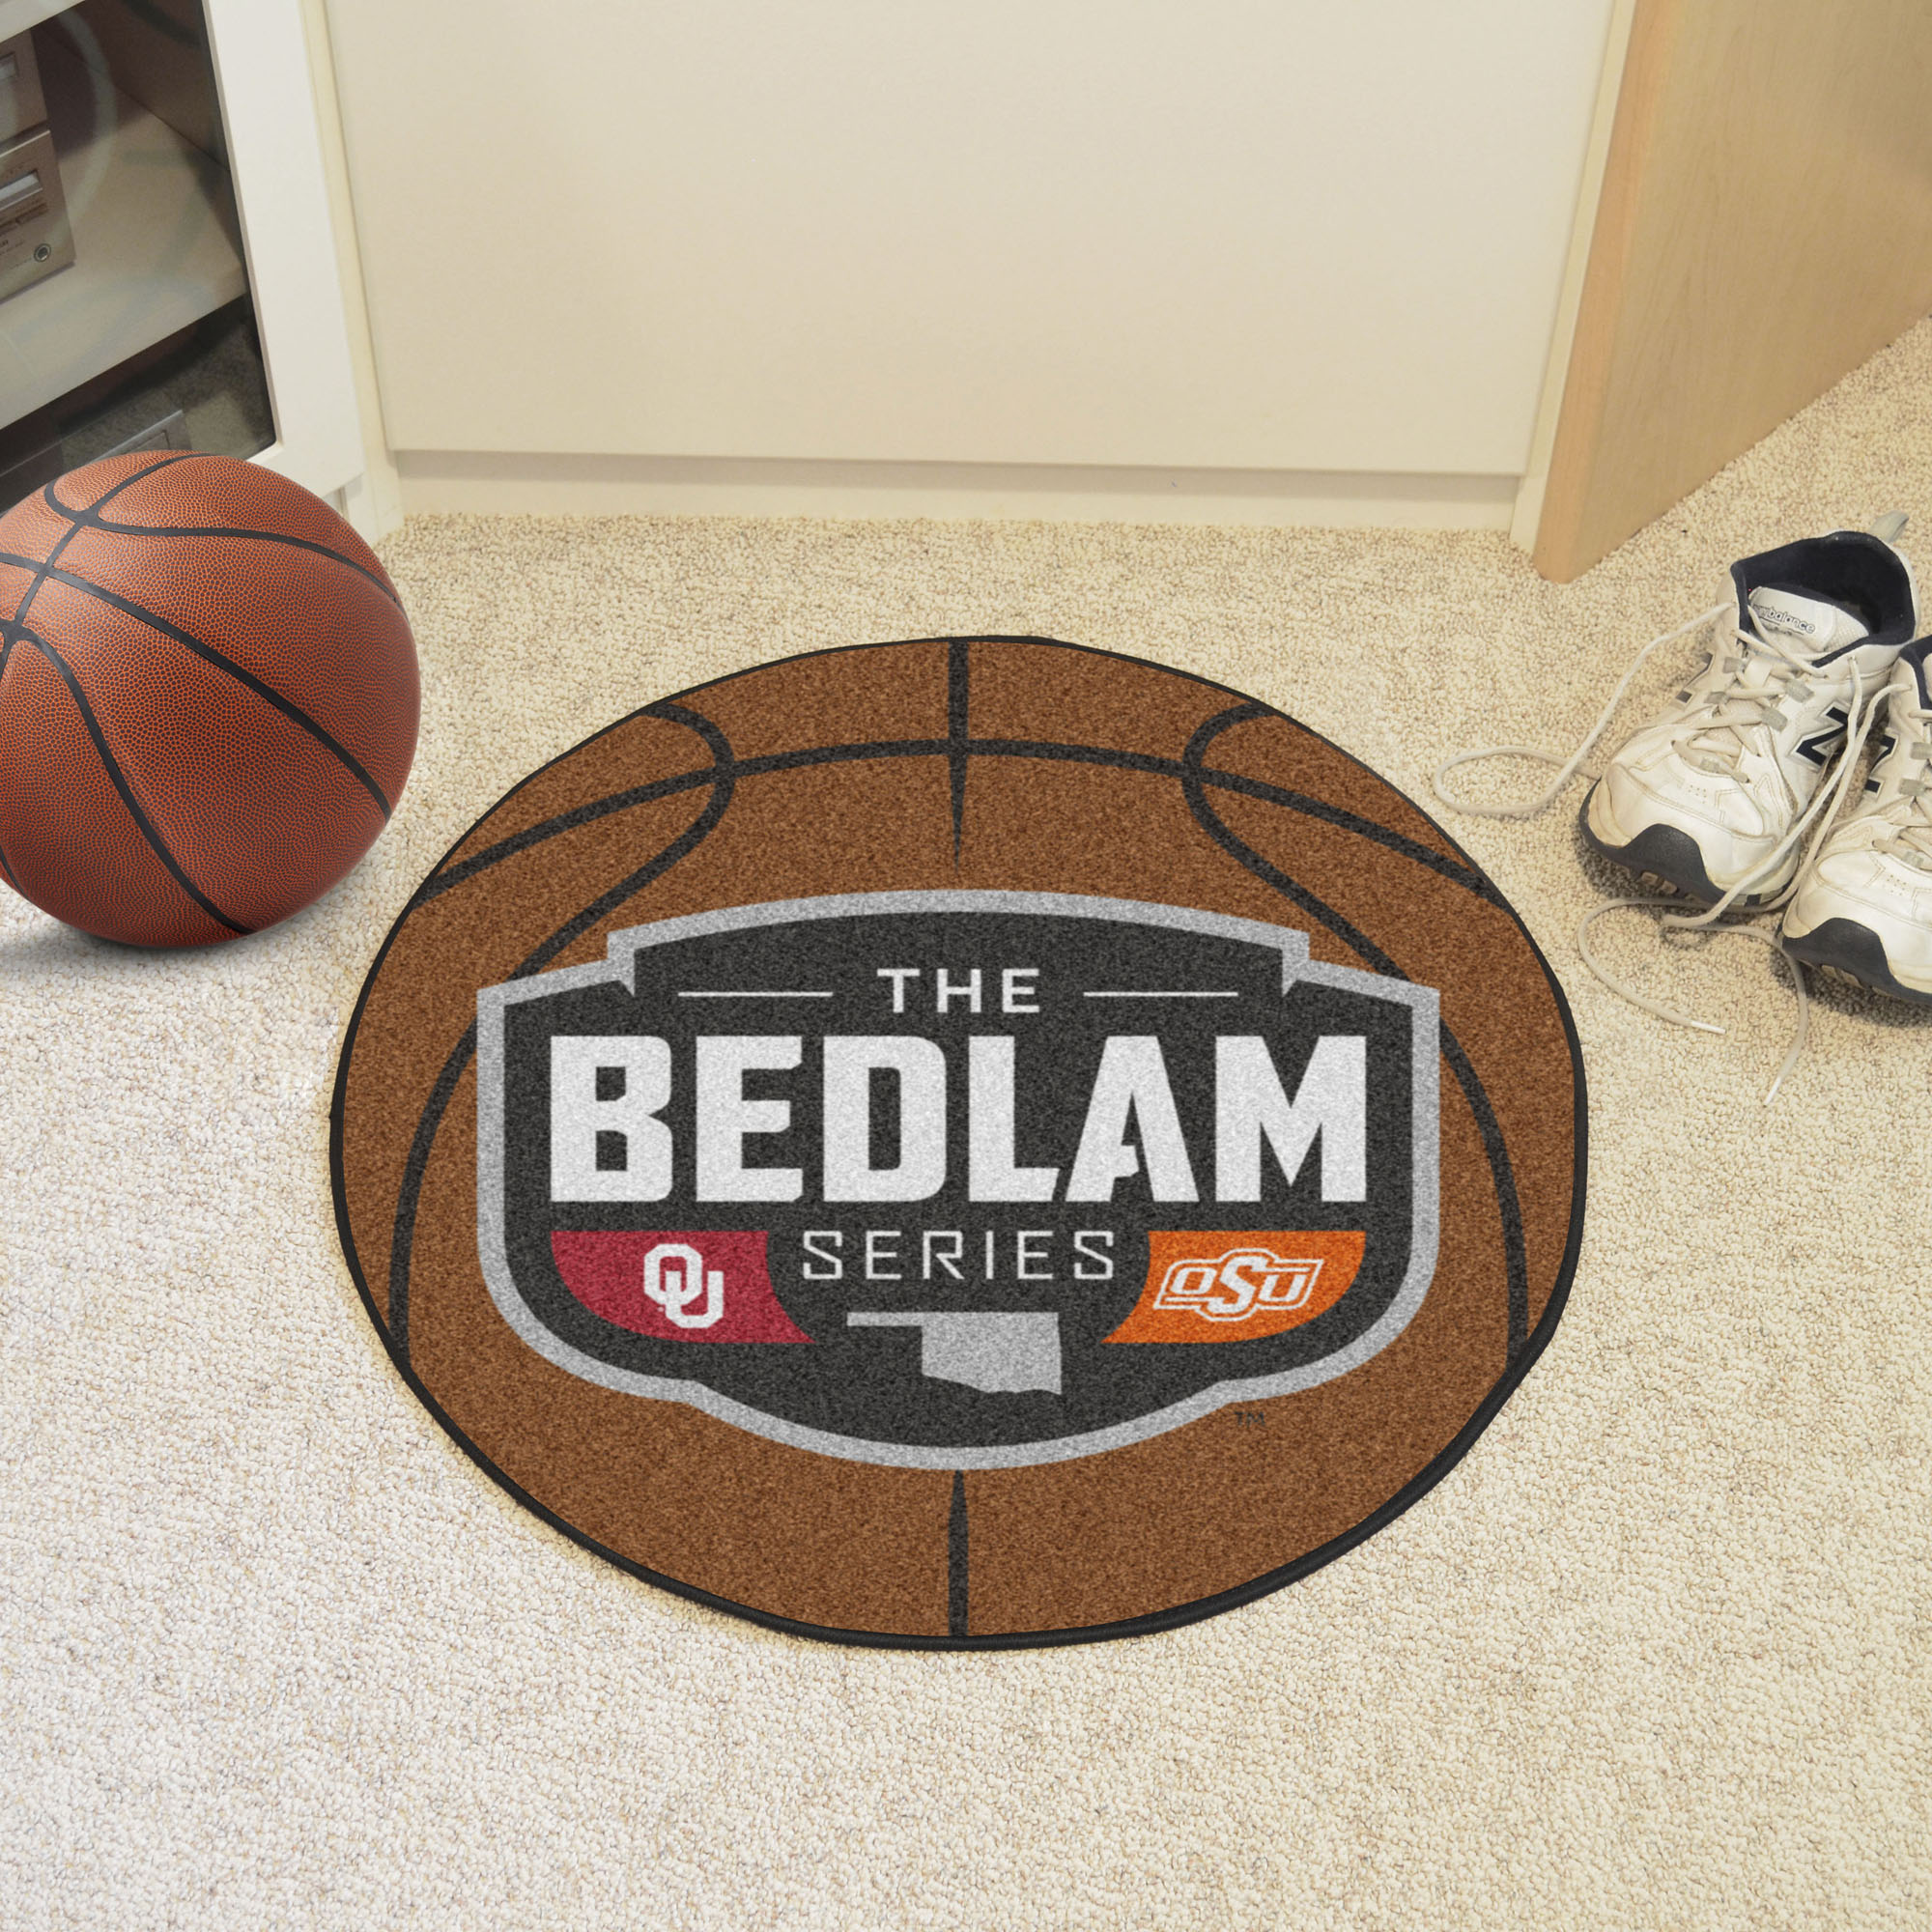 Bedlam Series Ball Shaped Area Rugs (Ball Shaped Area Rugs: Basketball)